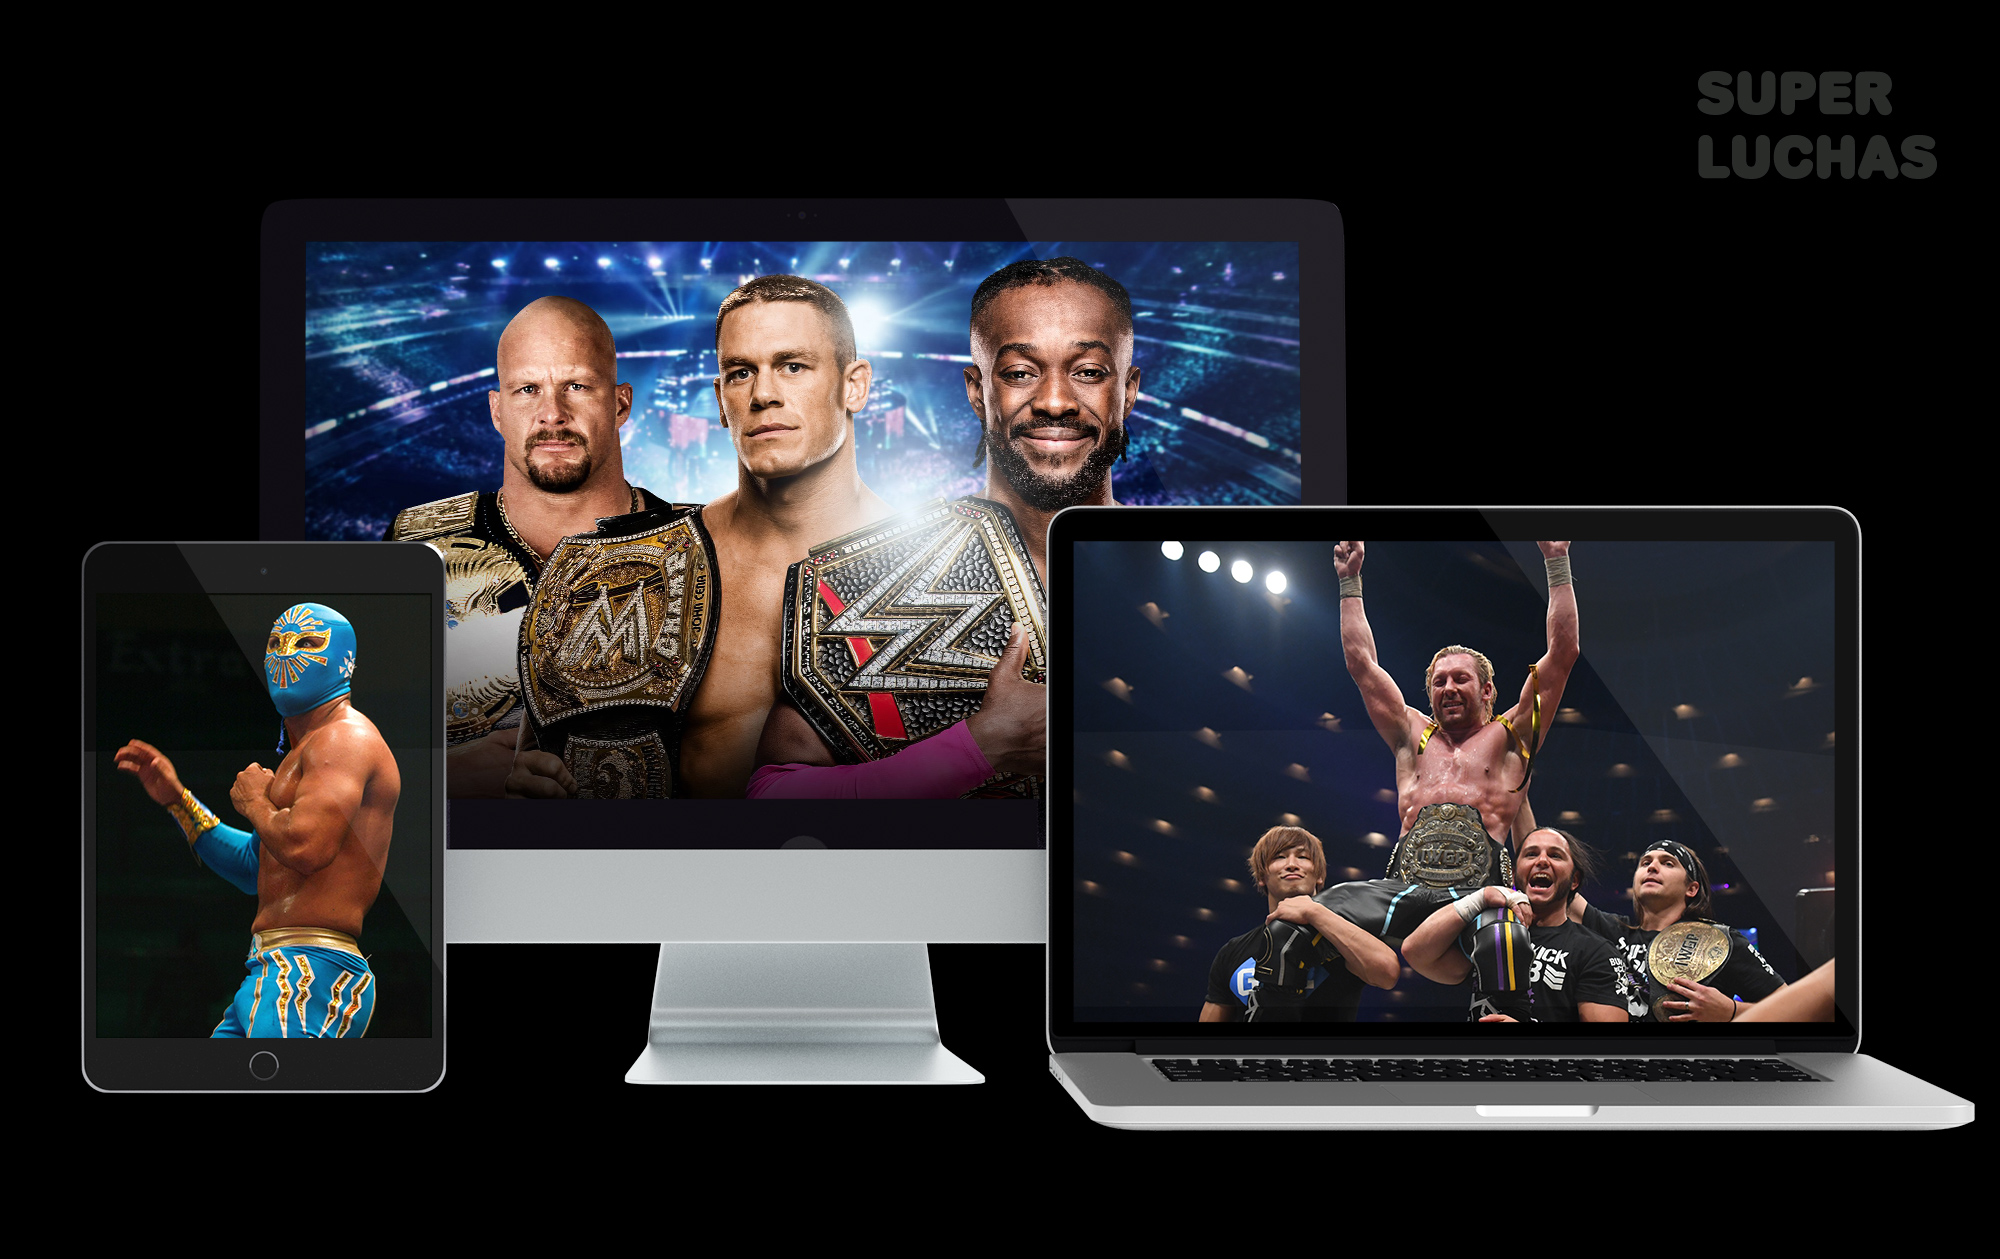 Wrestling and Lucha Libre online - Superluchas